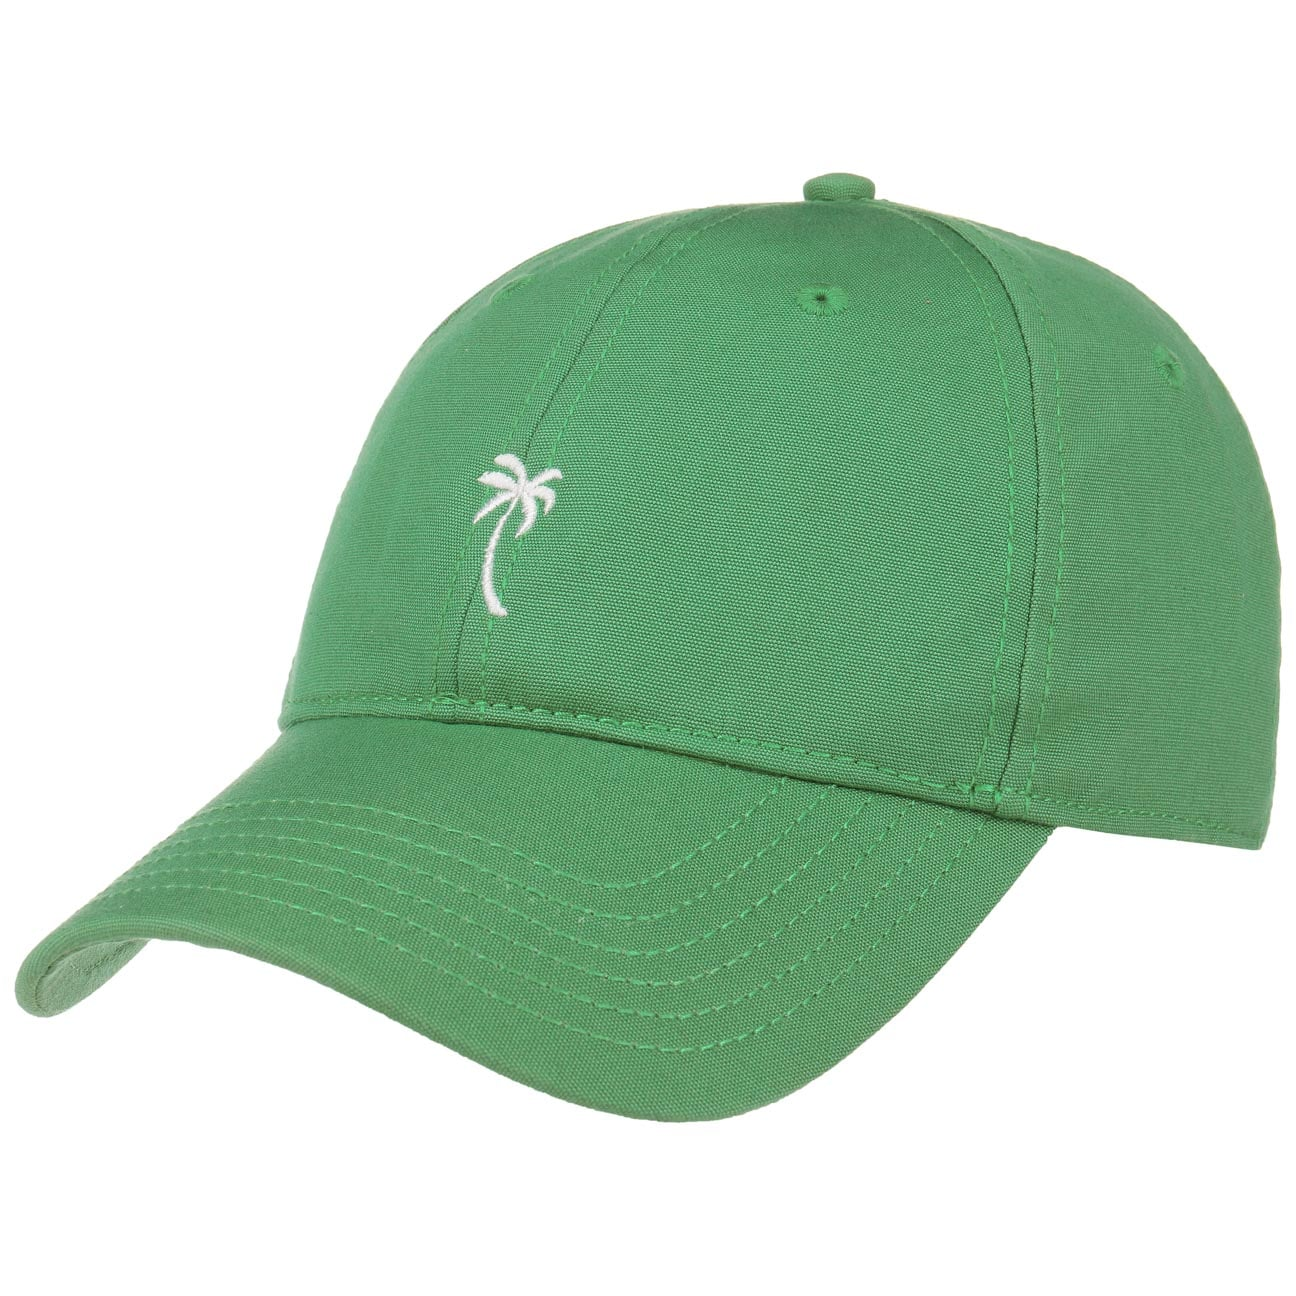 Gorra Palm Strapback by dedicated  gorra de algod?n